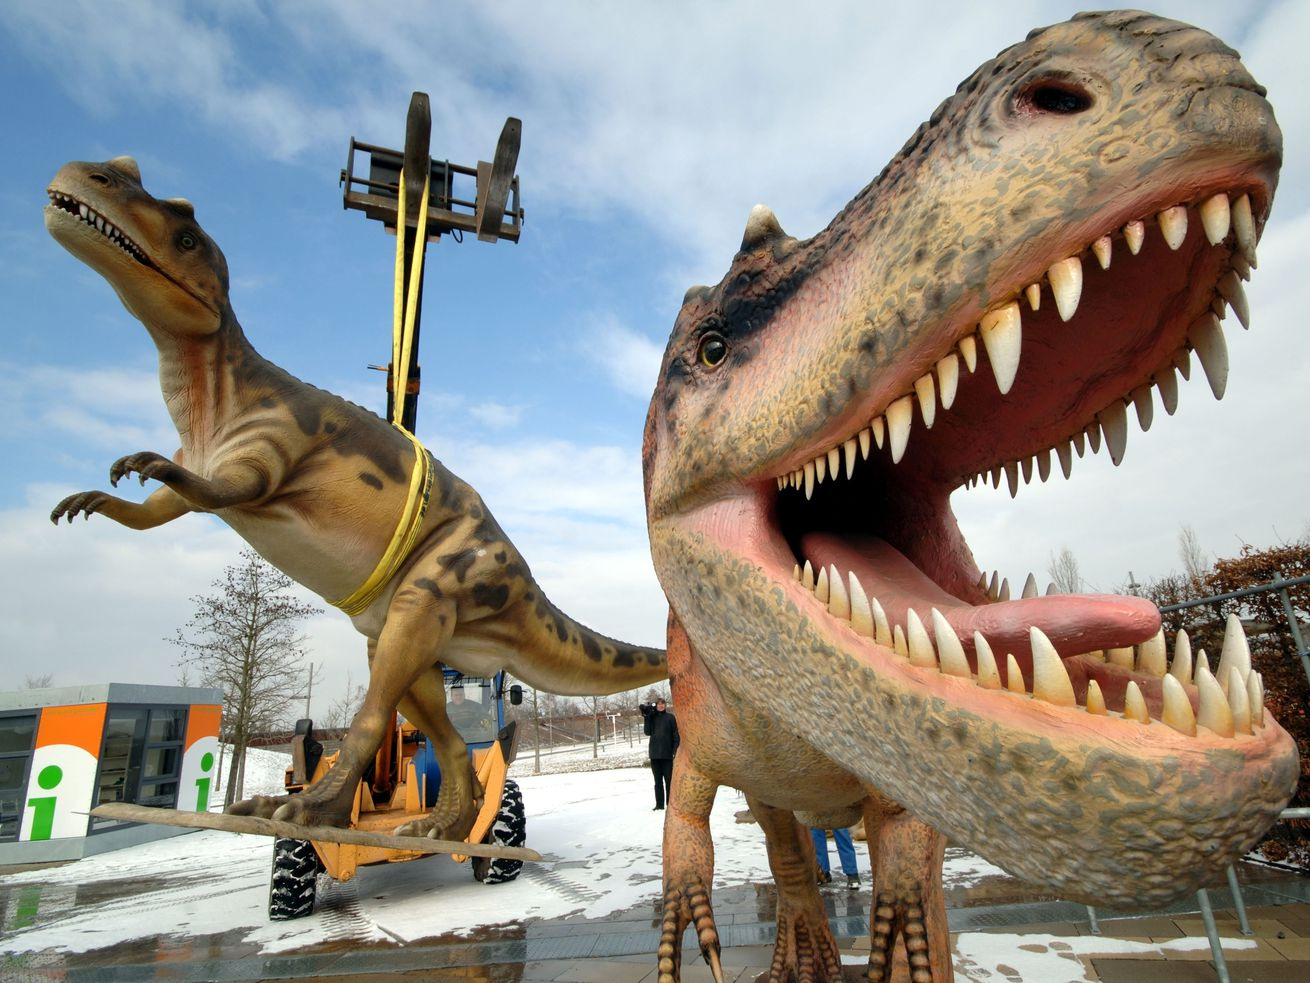 In this Tuesday, March 7, 2006 file photo, life-sized Tyrannosaurus rex models are unloaded for a dinosaur exhibition in Potsdam, Germany.